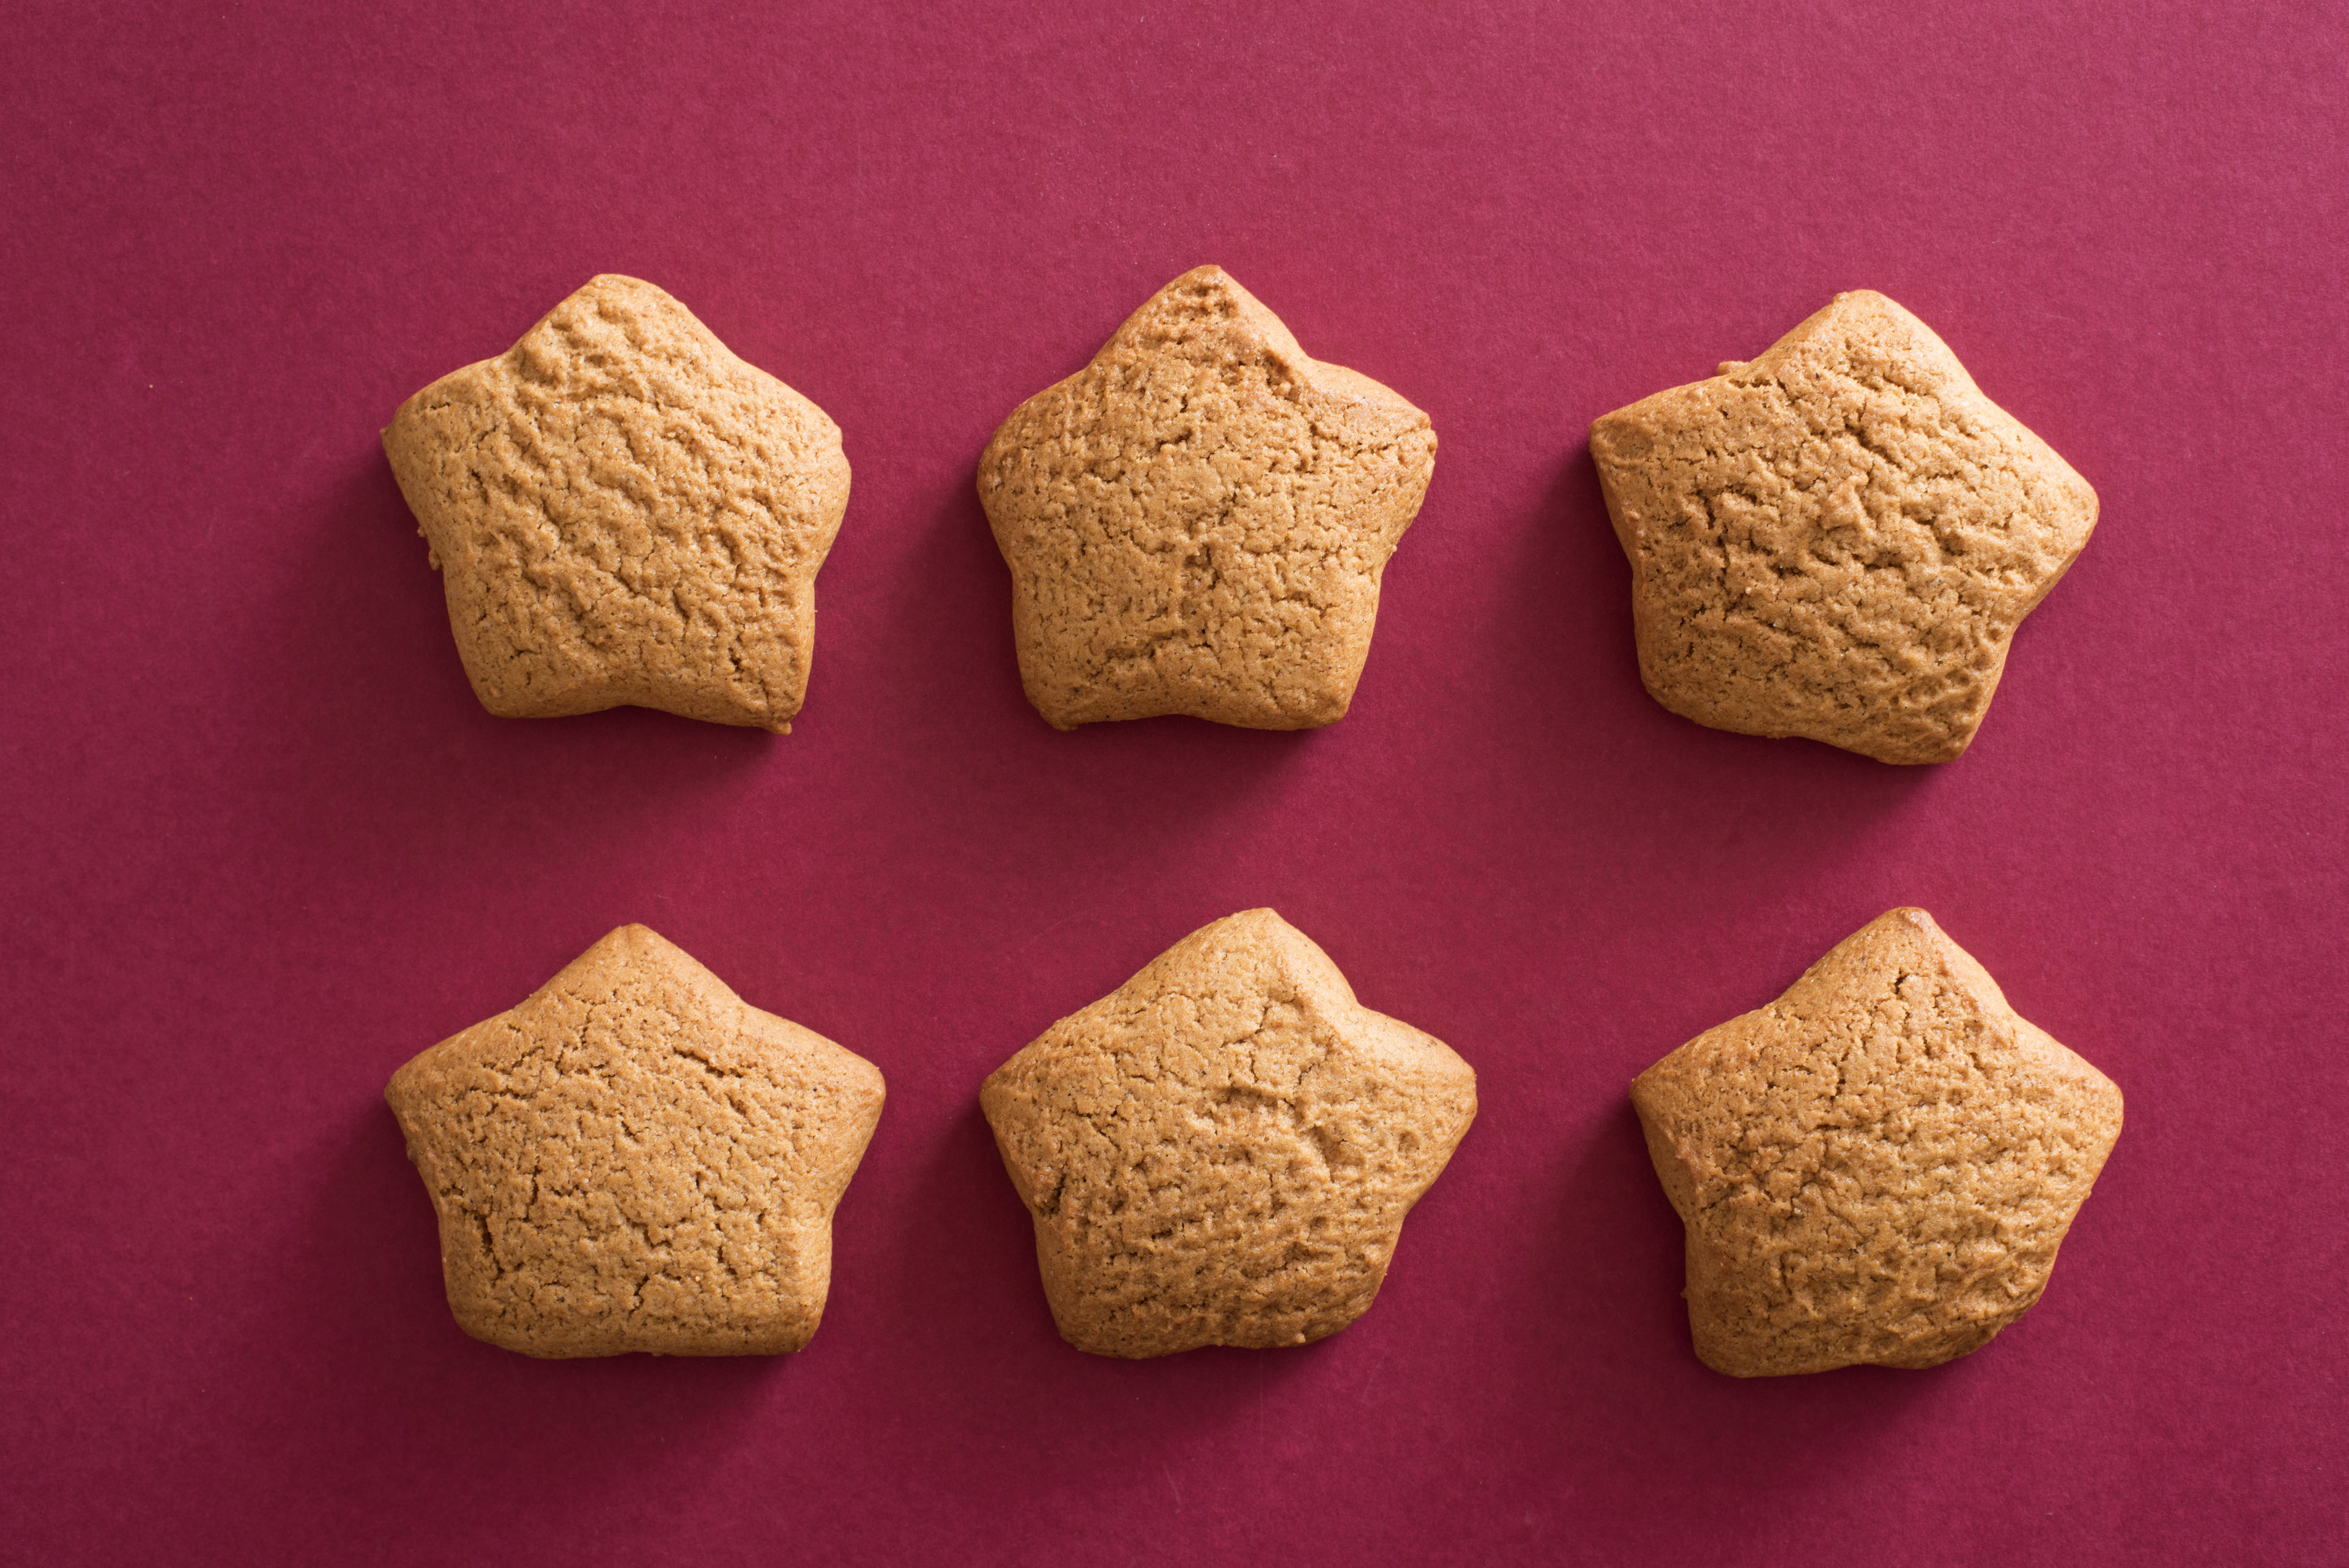 Six star shaped cookies in two rows on a festive red background for celebrating Christmas and New Year